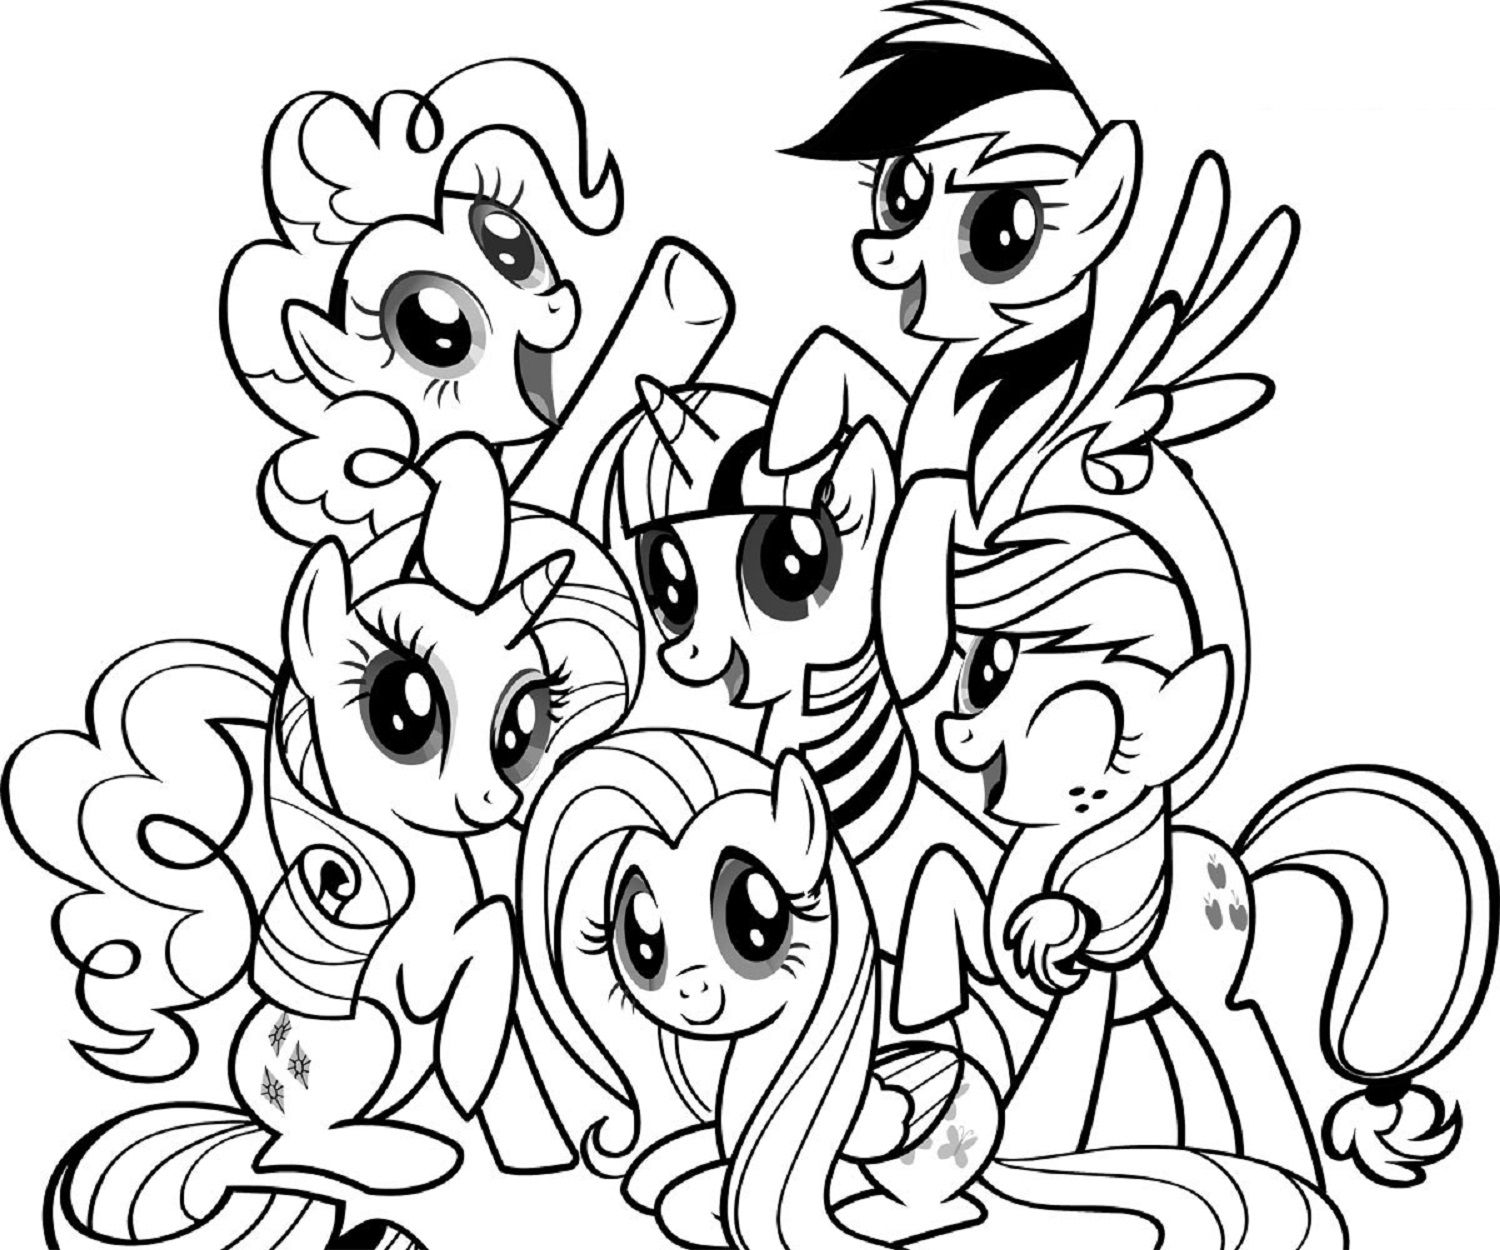 my little pony coloring pages with friends | Colouring pages ...